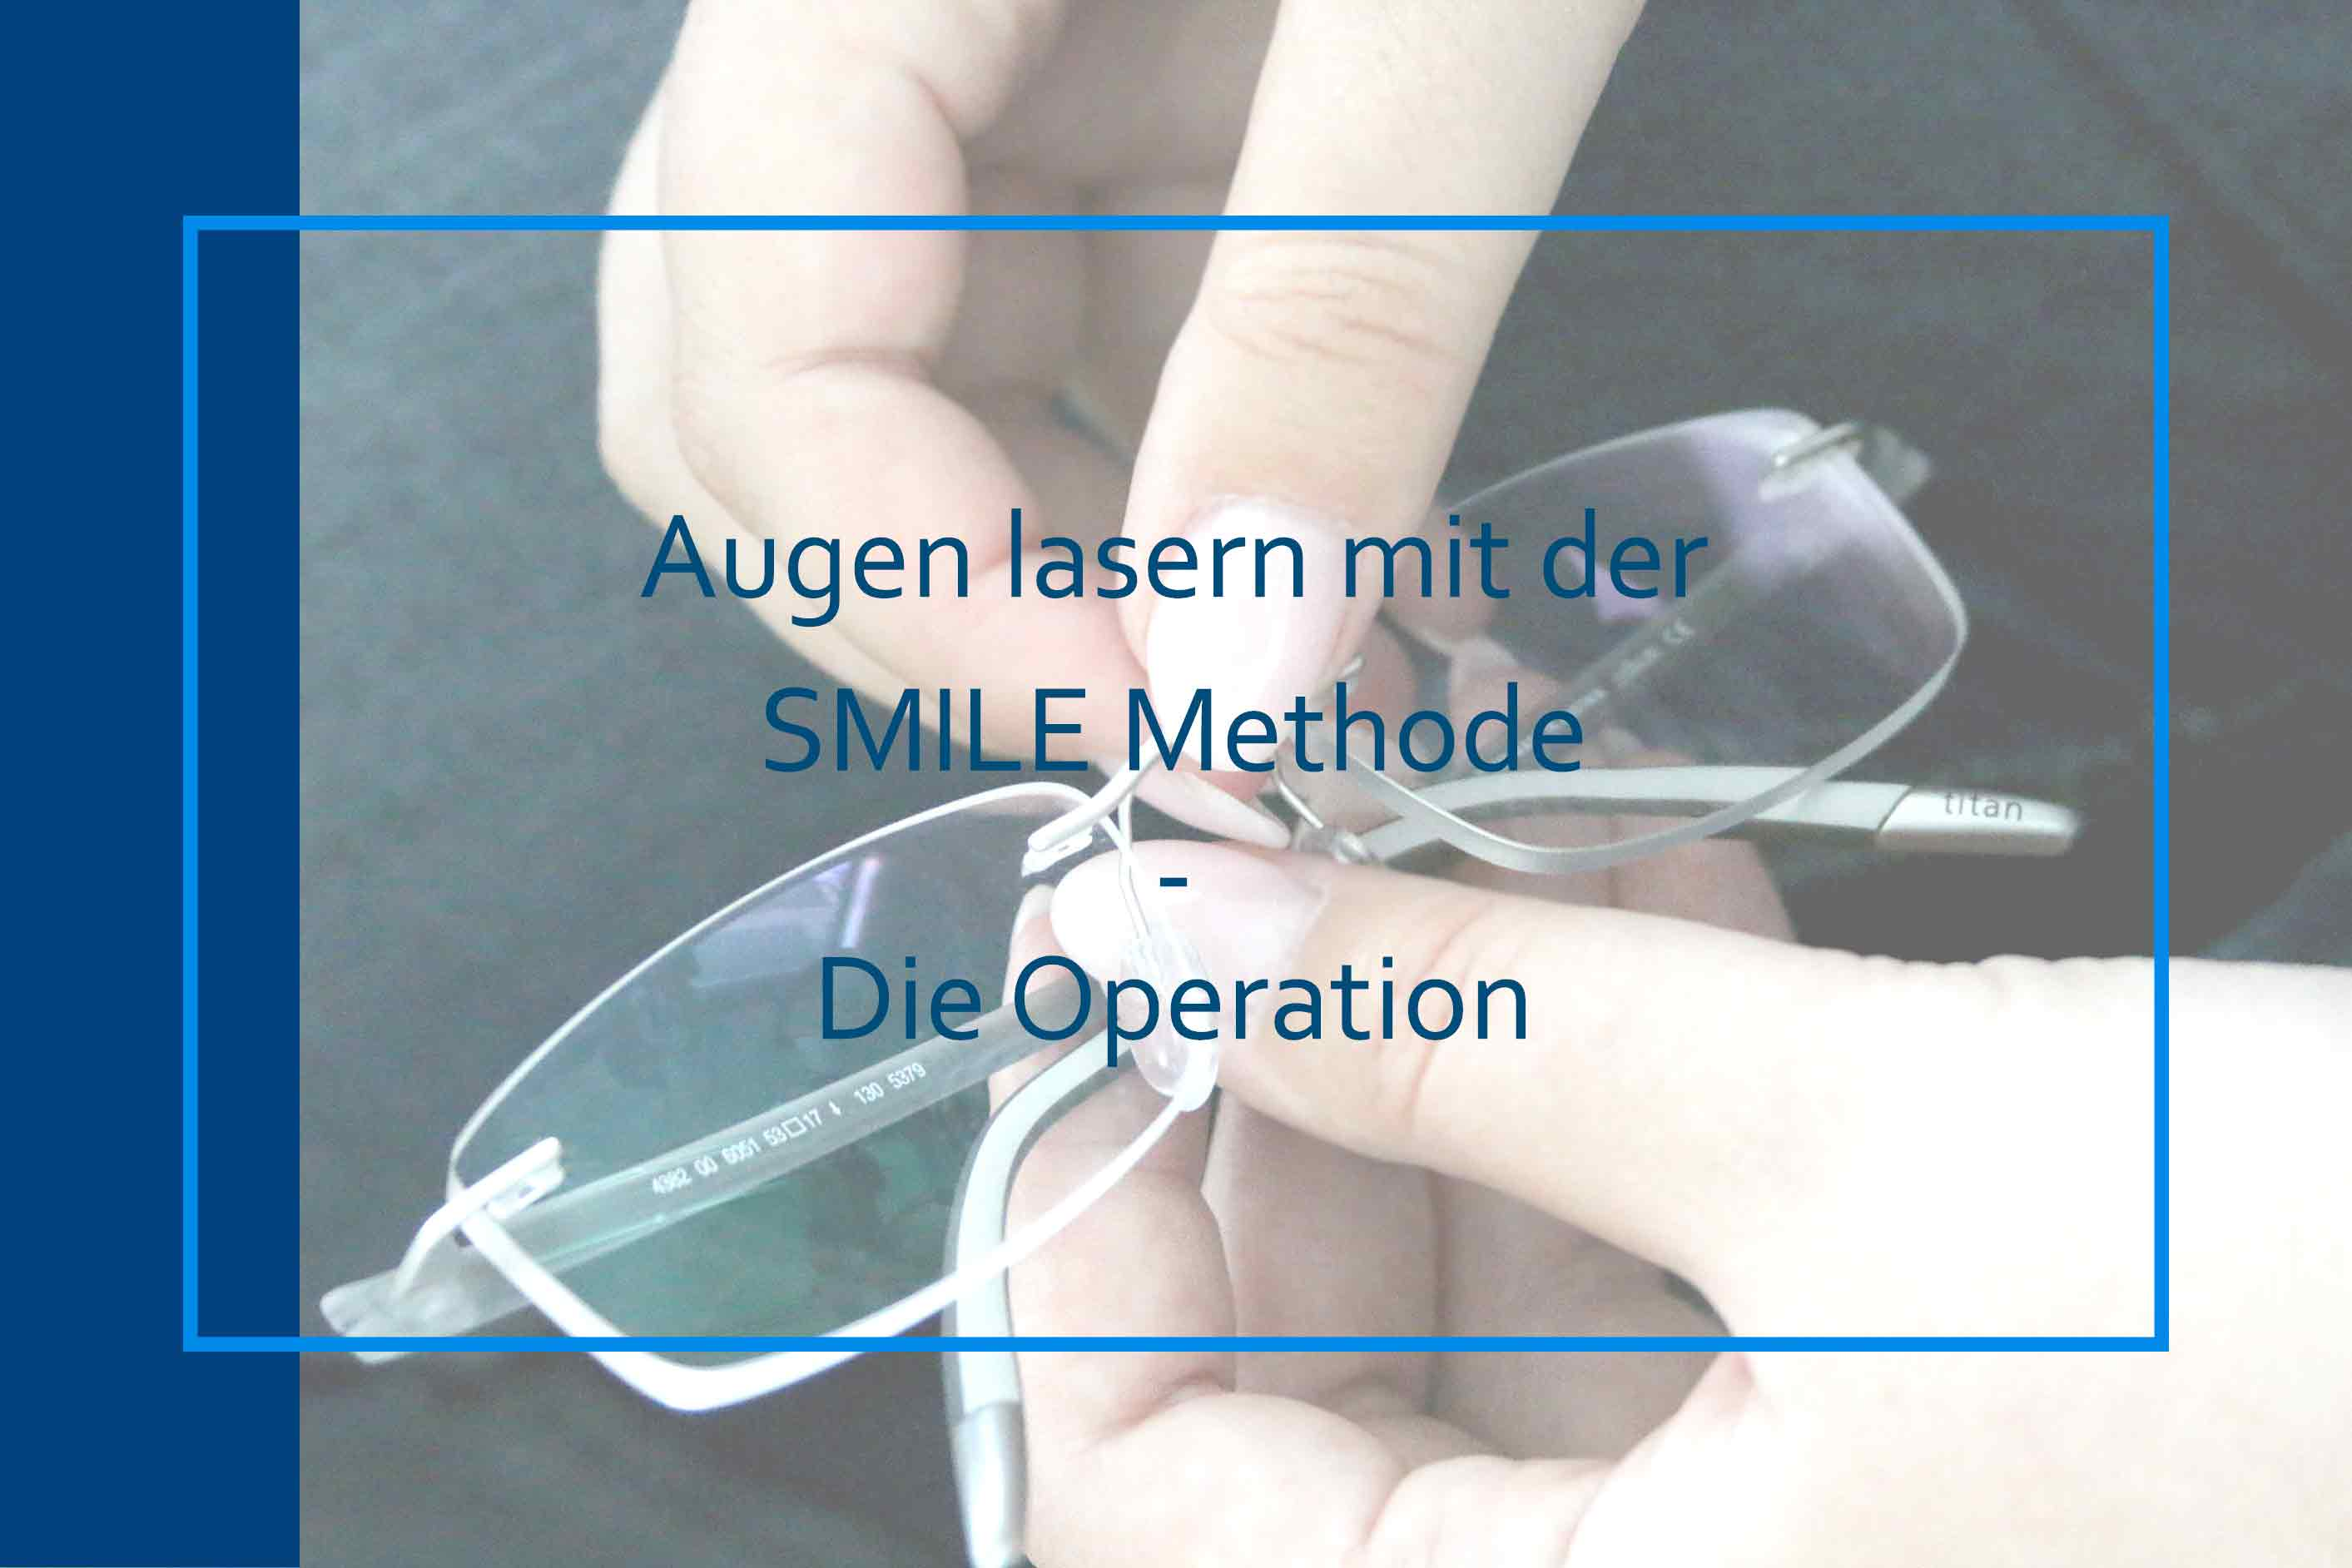 SMILE - Methode